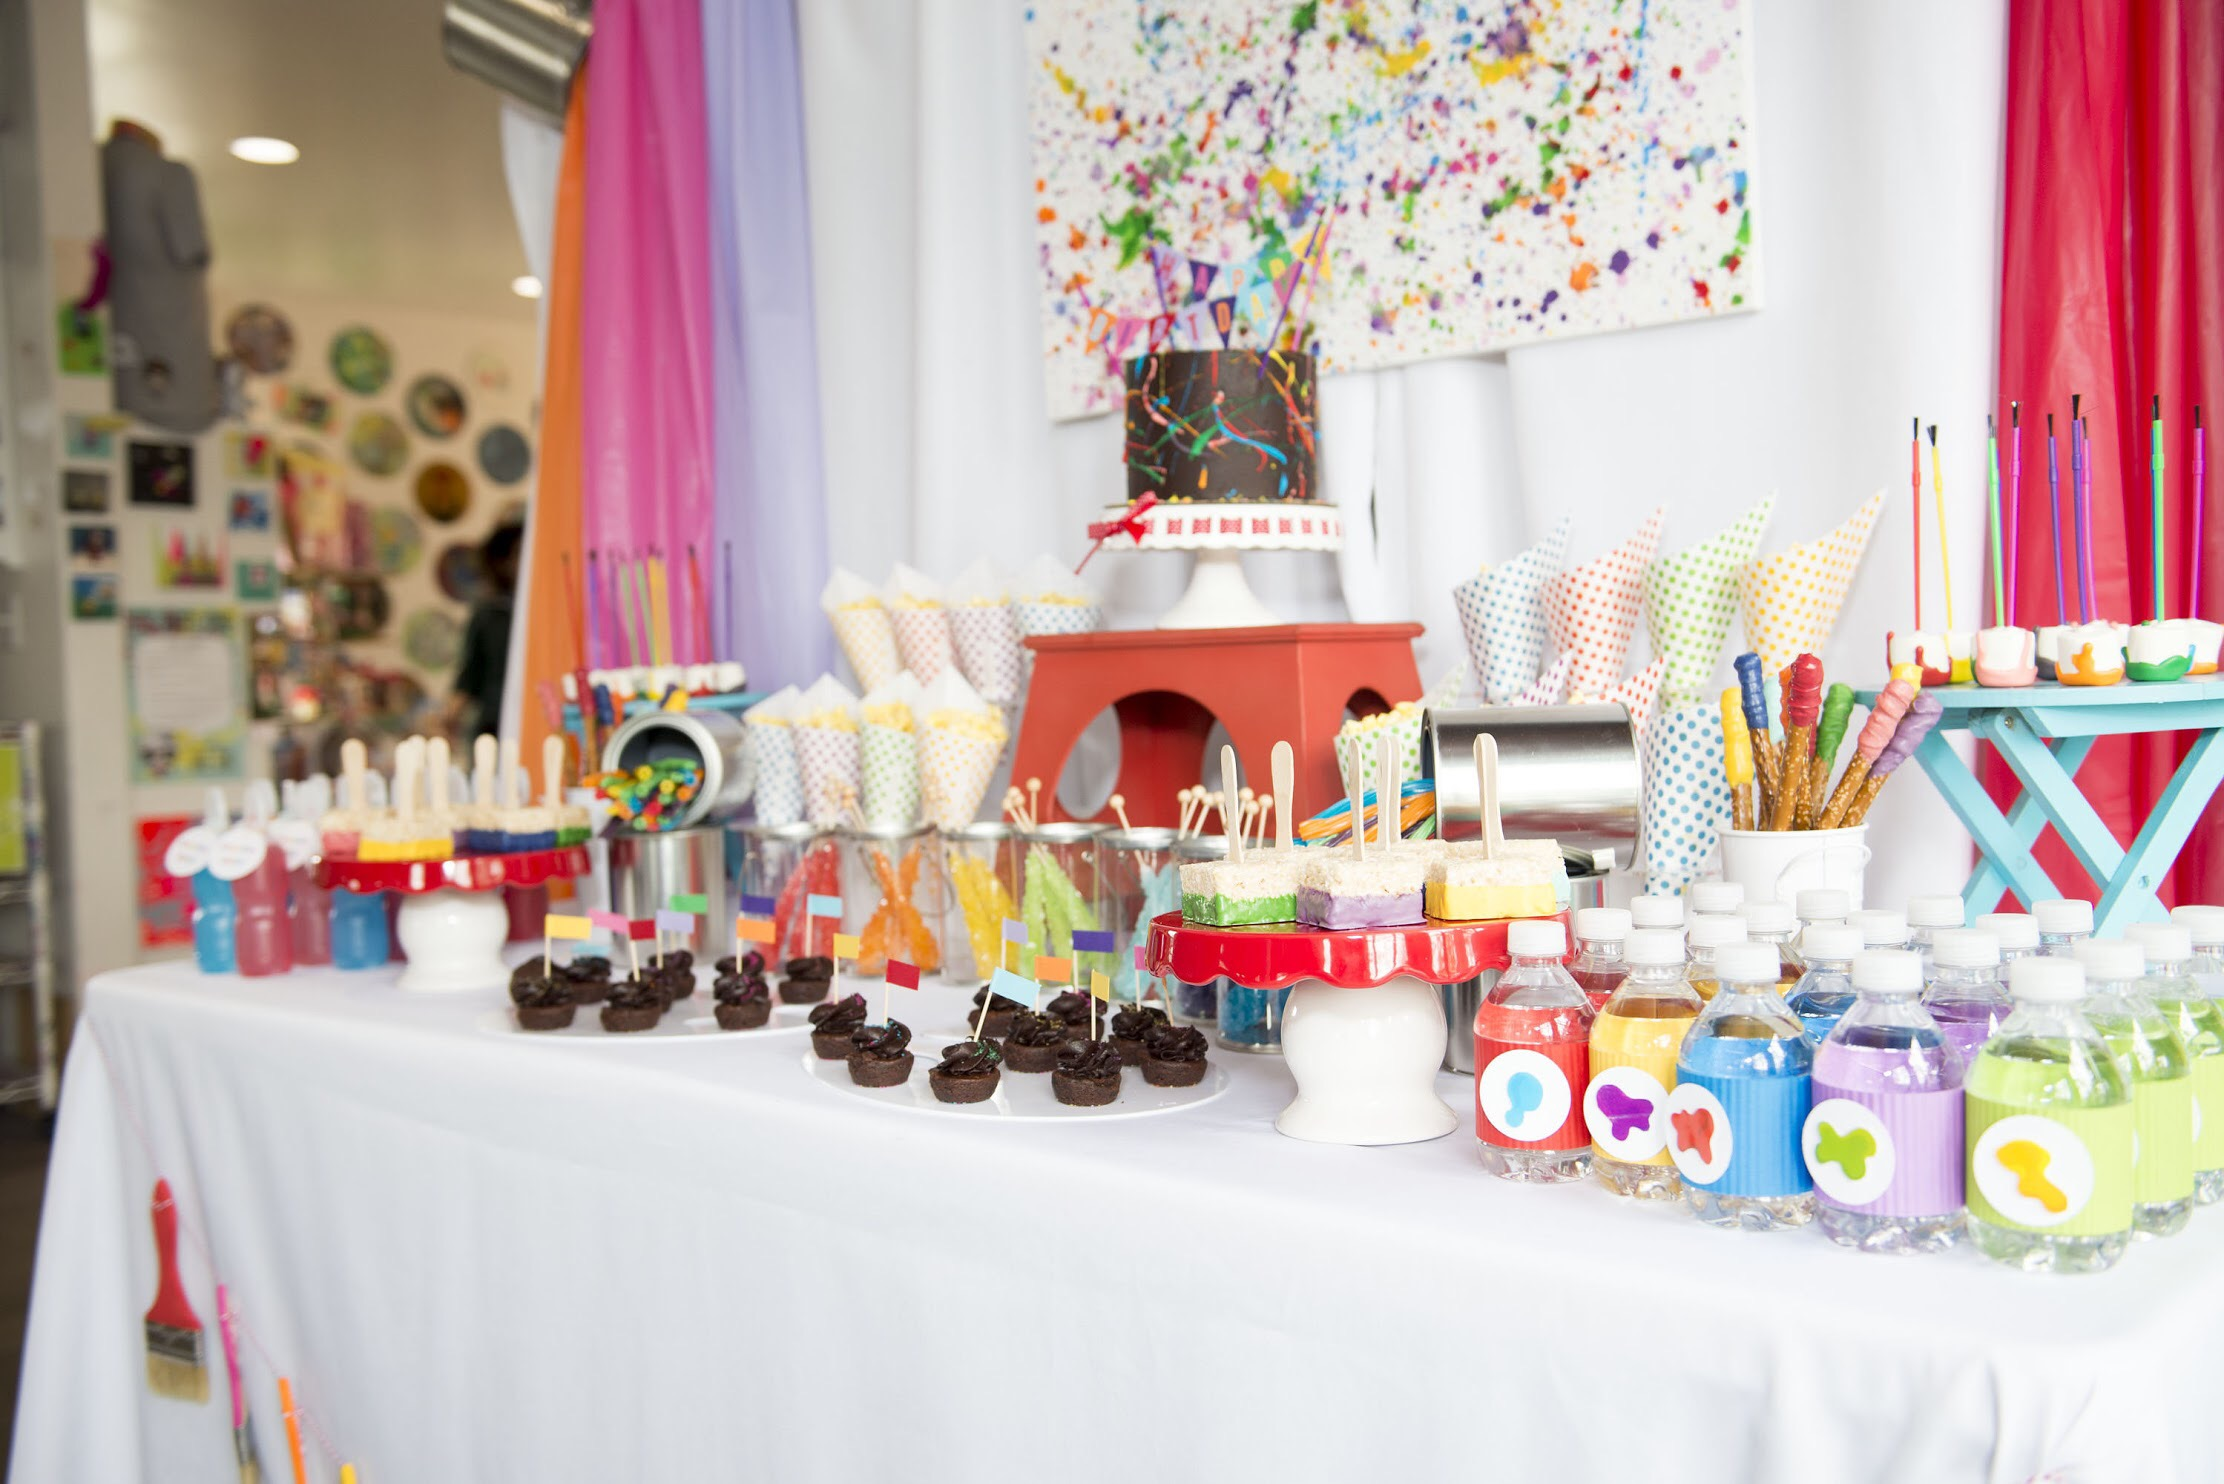 Planning an art themed birthday party? A rainbow color palette is the top choice. See how to plan your art party at a local art studio on Mint Event Design www.minteventdesign.com #artstudio #kidsparty #kidspartyideas #birthdaypartyideas #artparty #rainbowparty